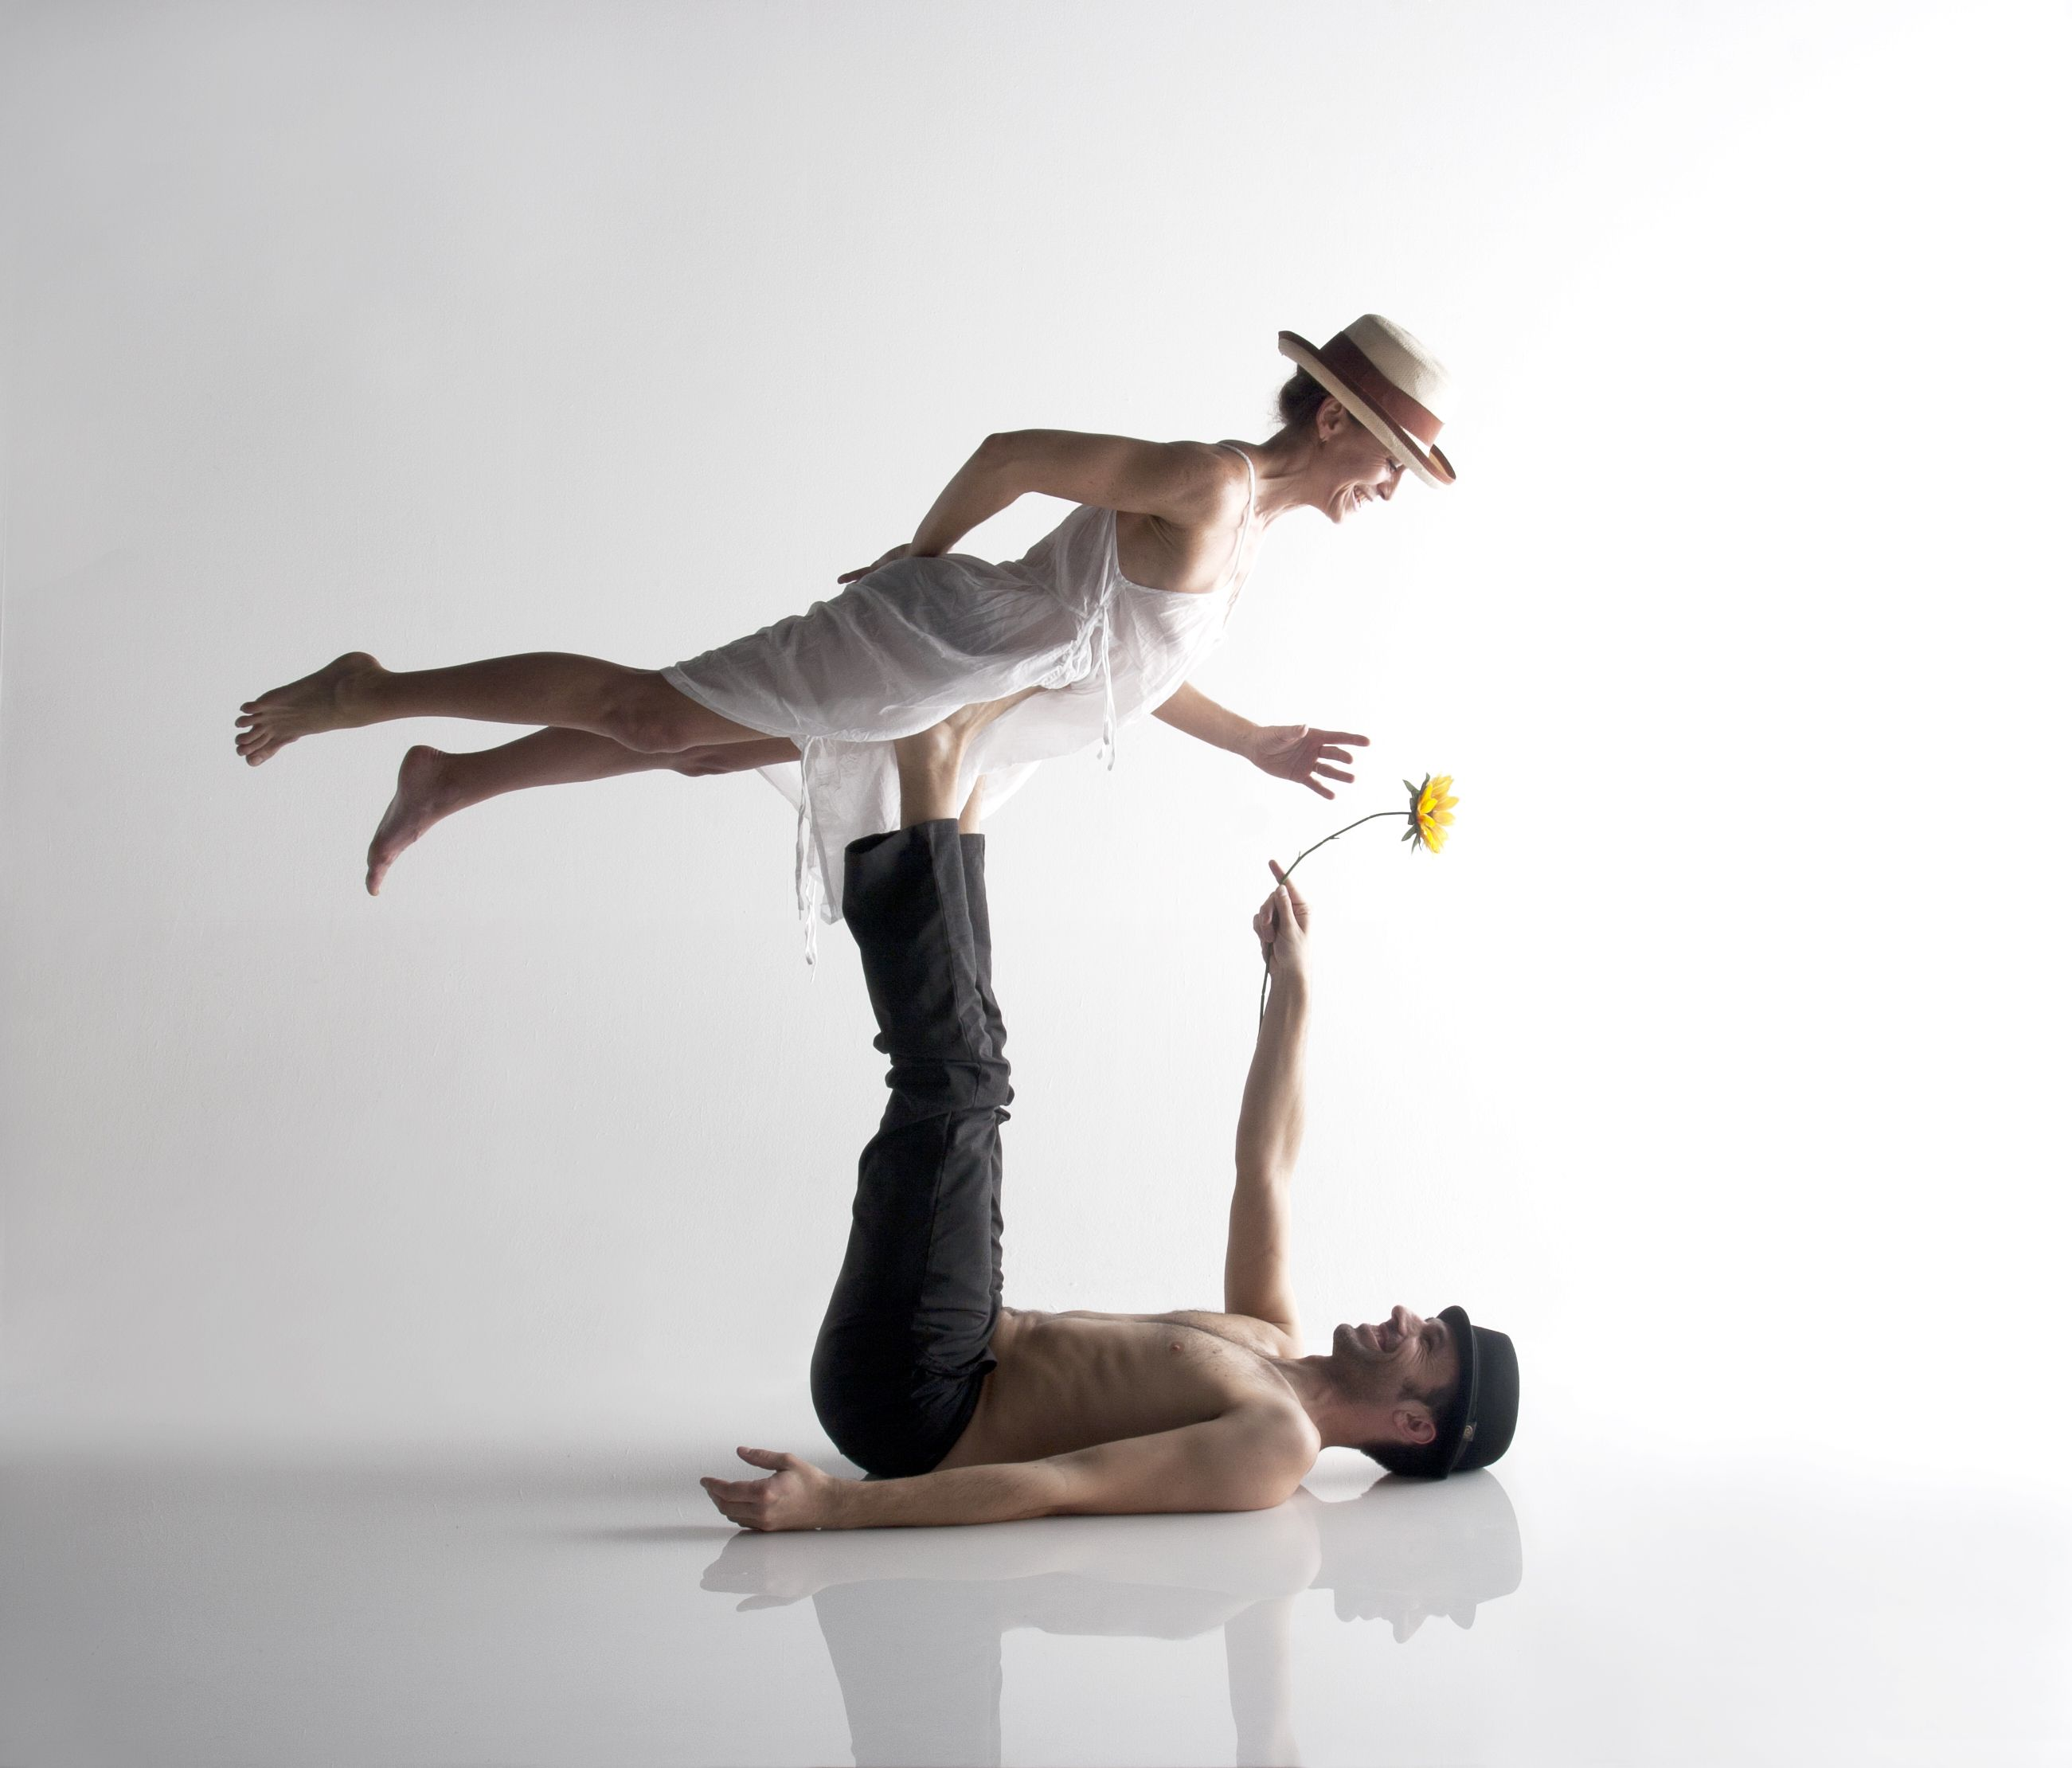 Couples yoga, but cute couples photo too #acroyoga